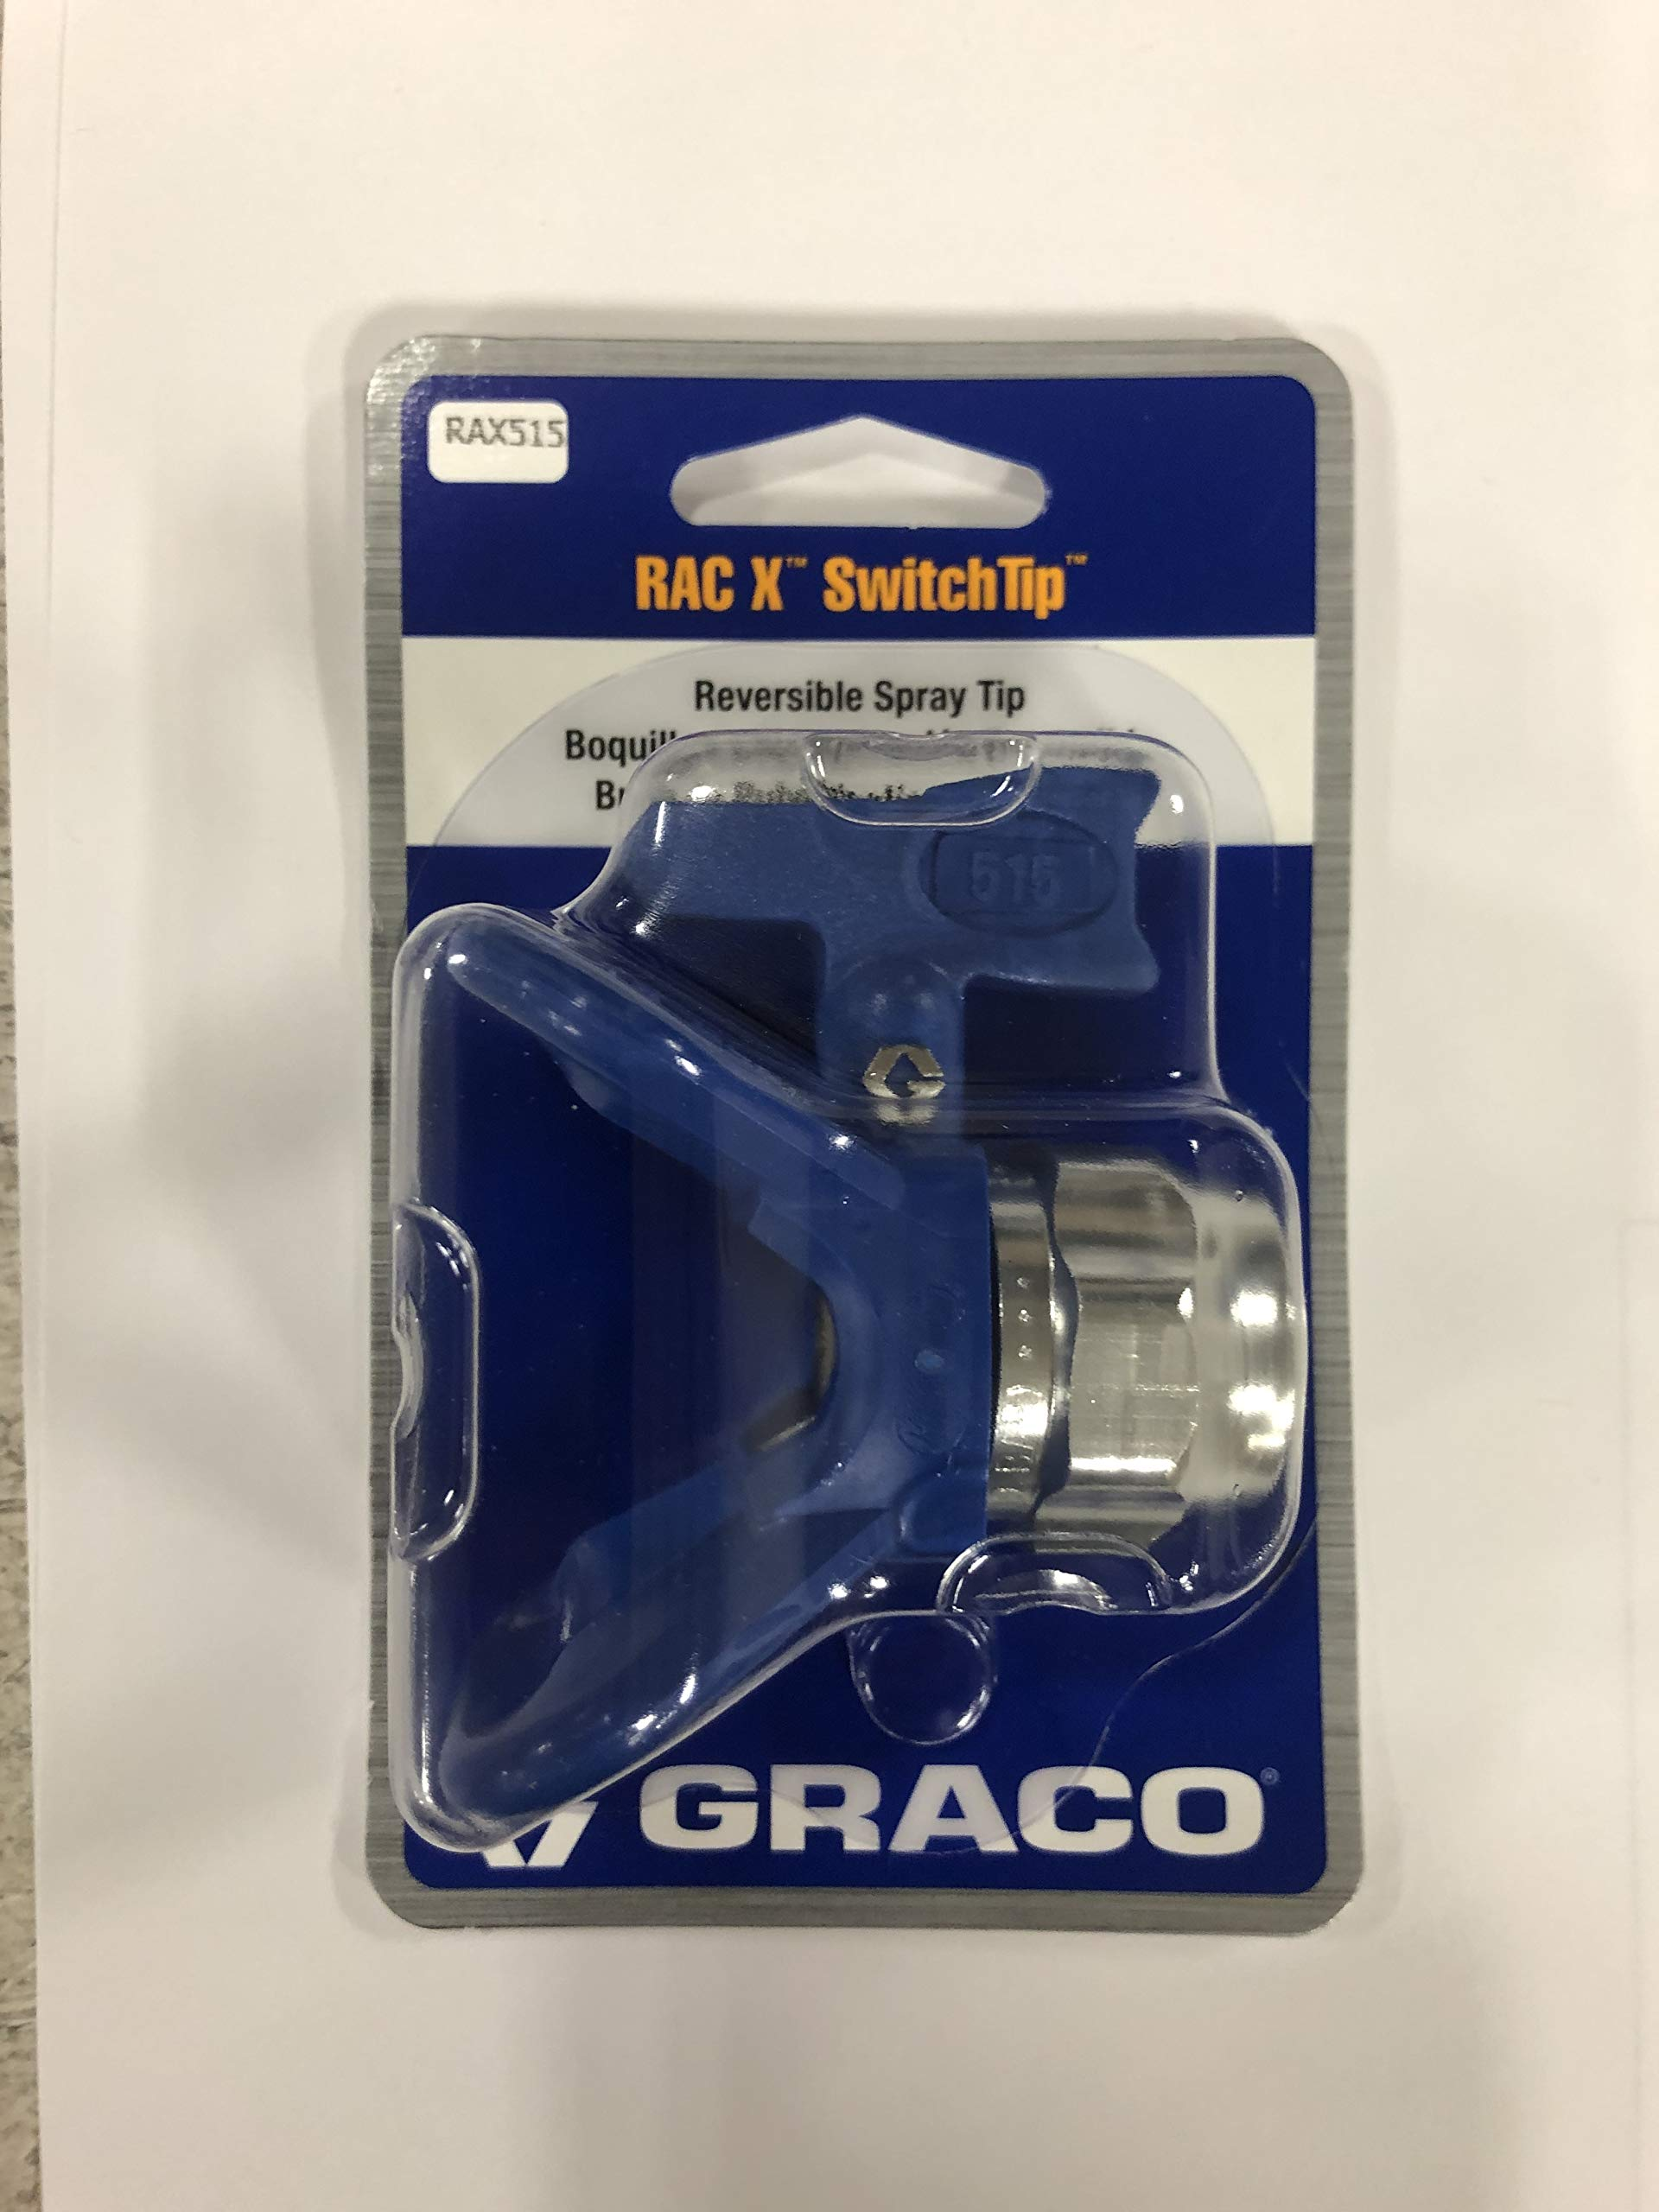 Graco Airless Spray Guard RAX515